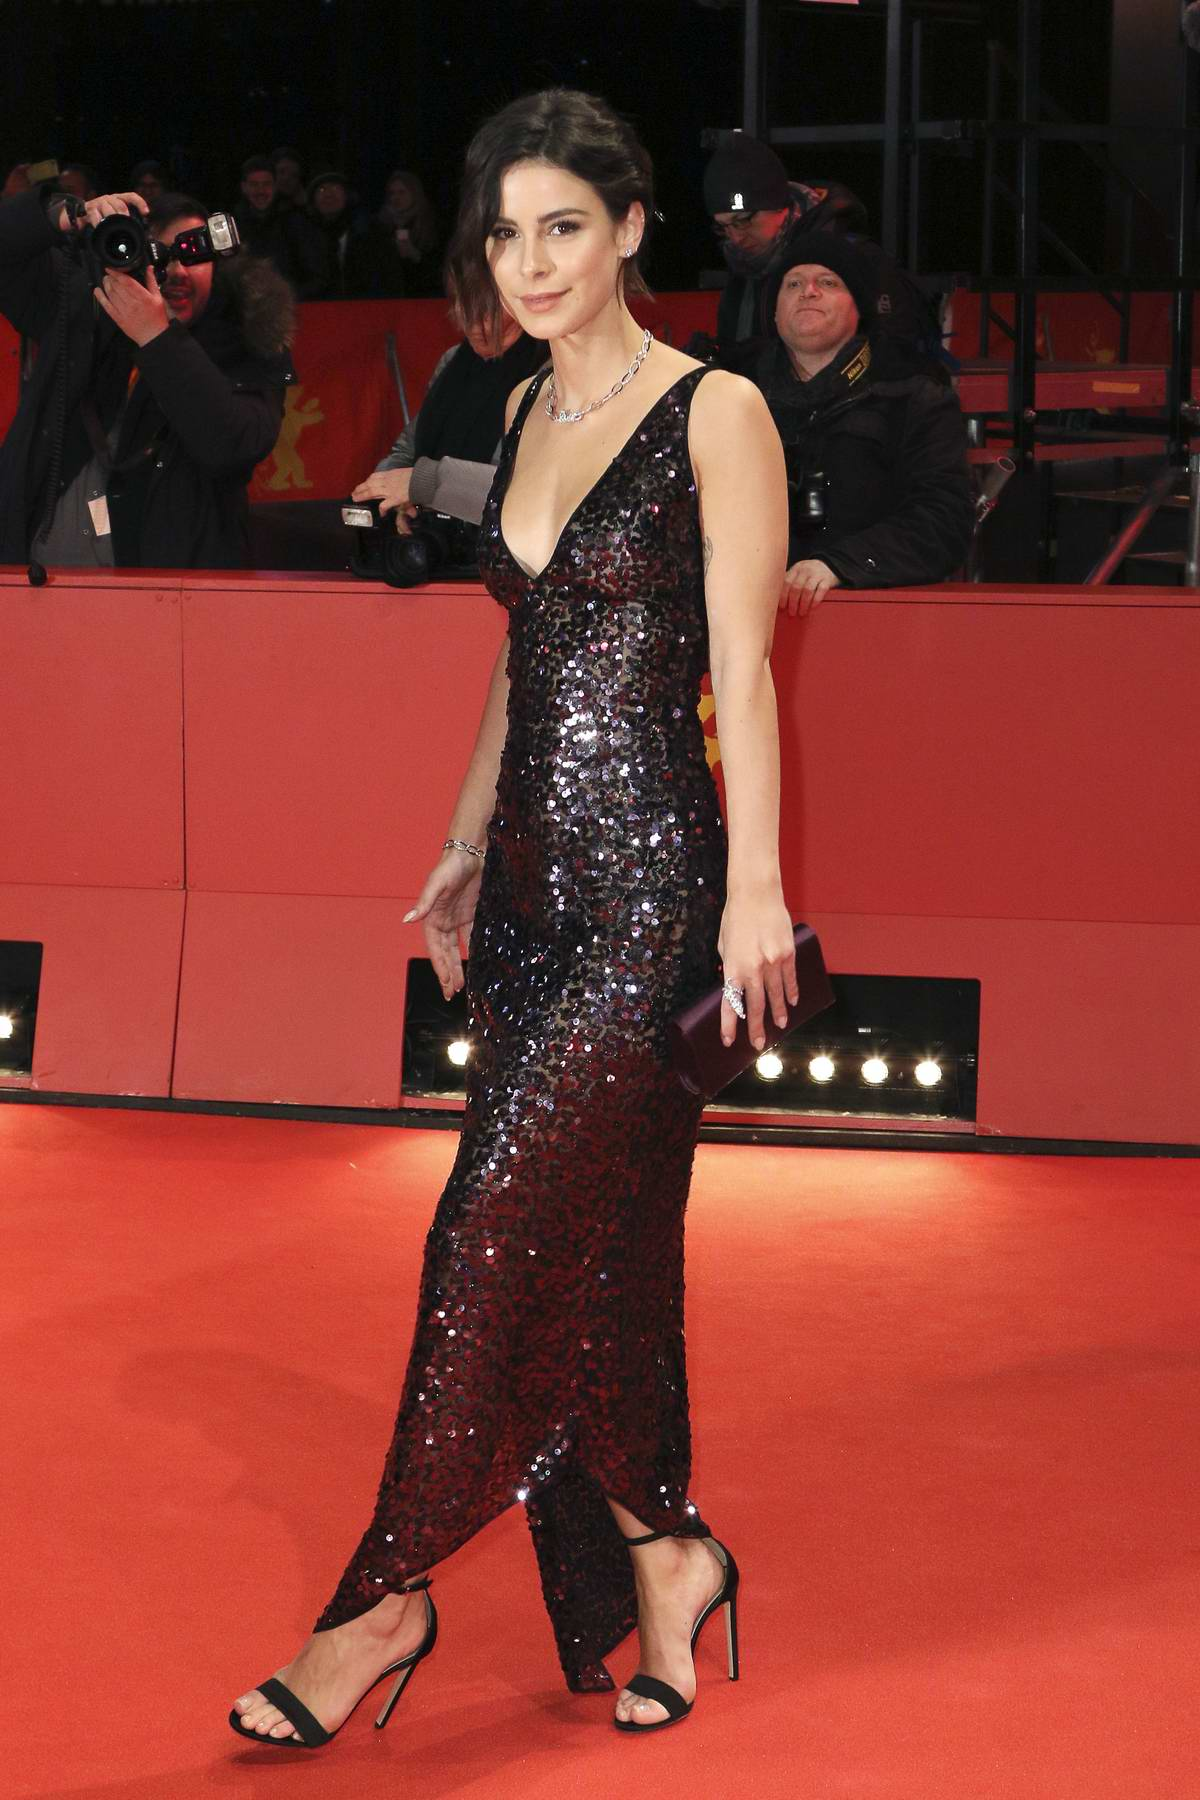 Lena Meyer-Landrut attends 'By the Grace of God' Premiere during the 69th Berlin International Film Festival in Berlin, Germany